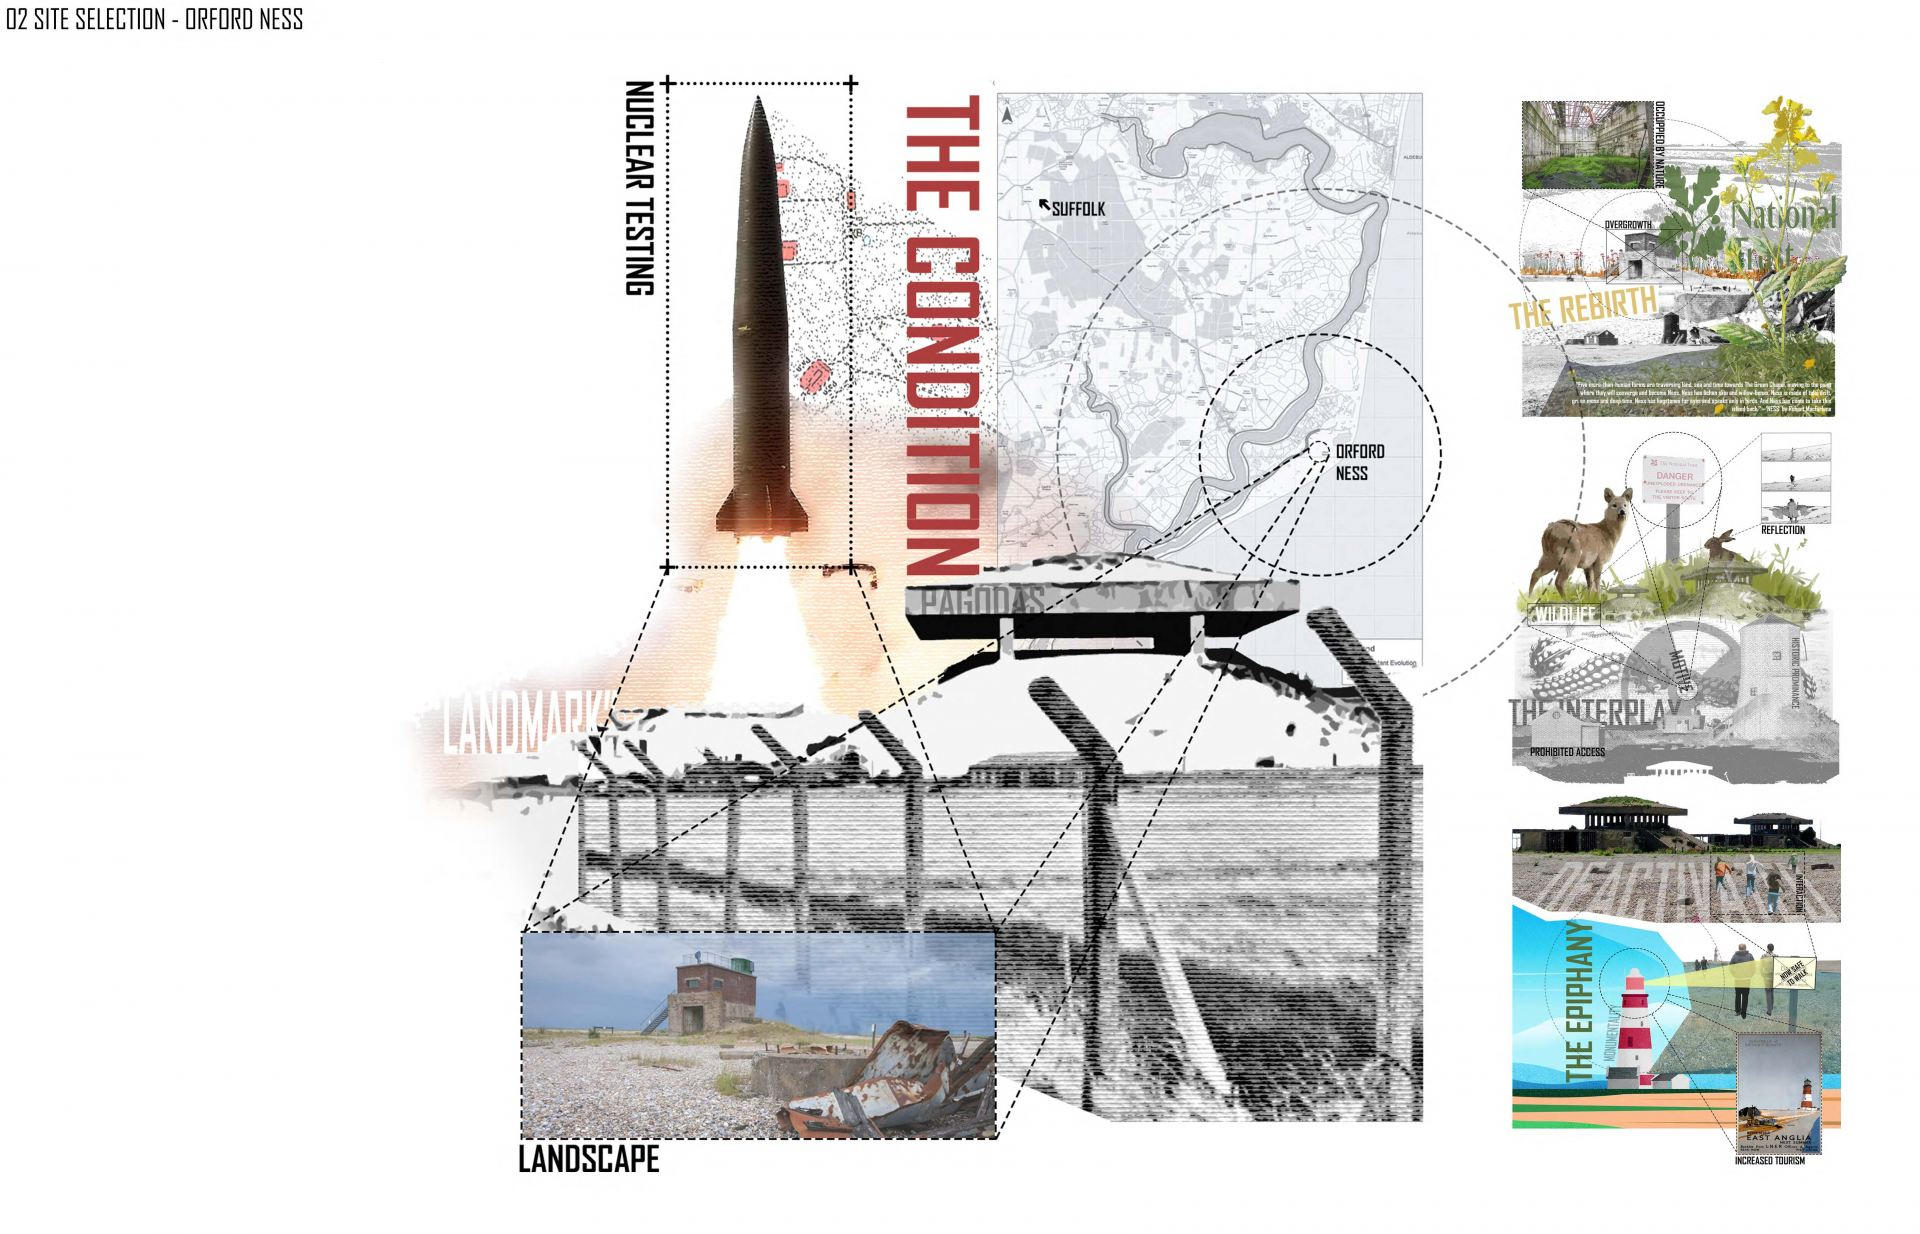 Image of Site concept - I unpacked the site of Orford Ness using the Fictional Frameworking stages from my concept.